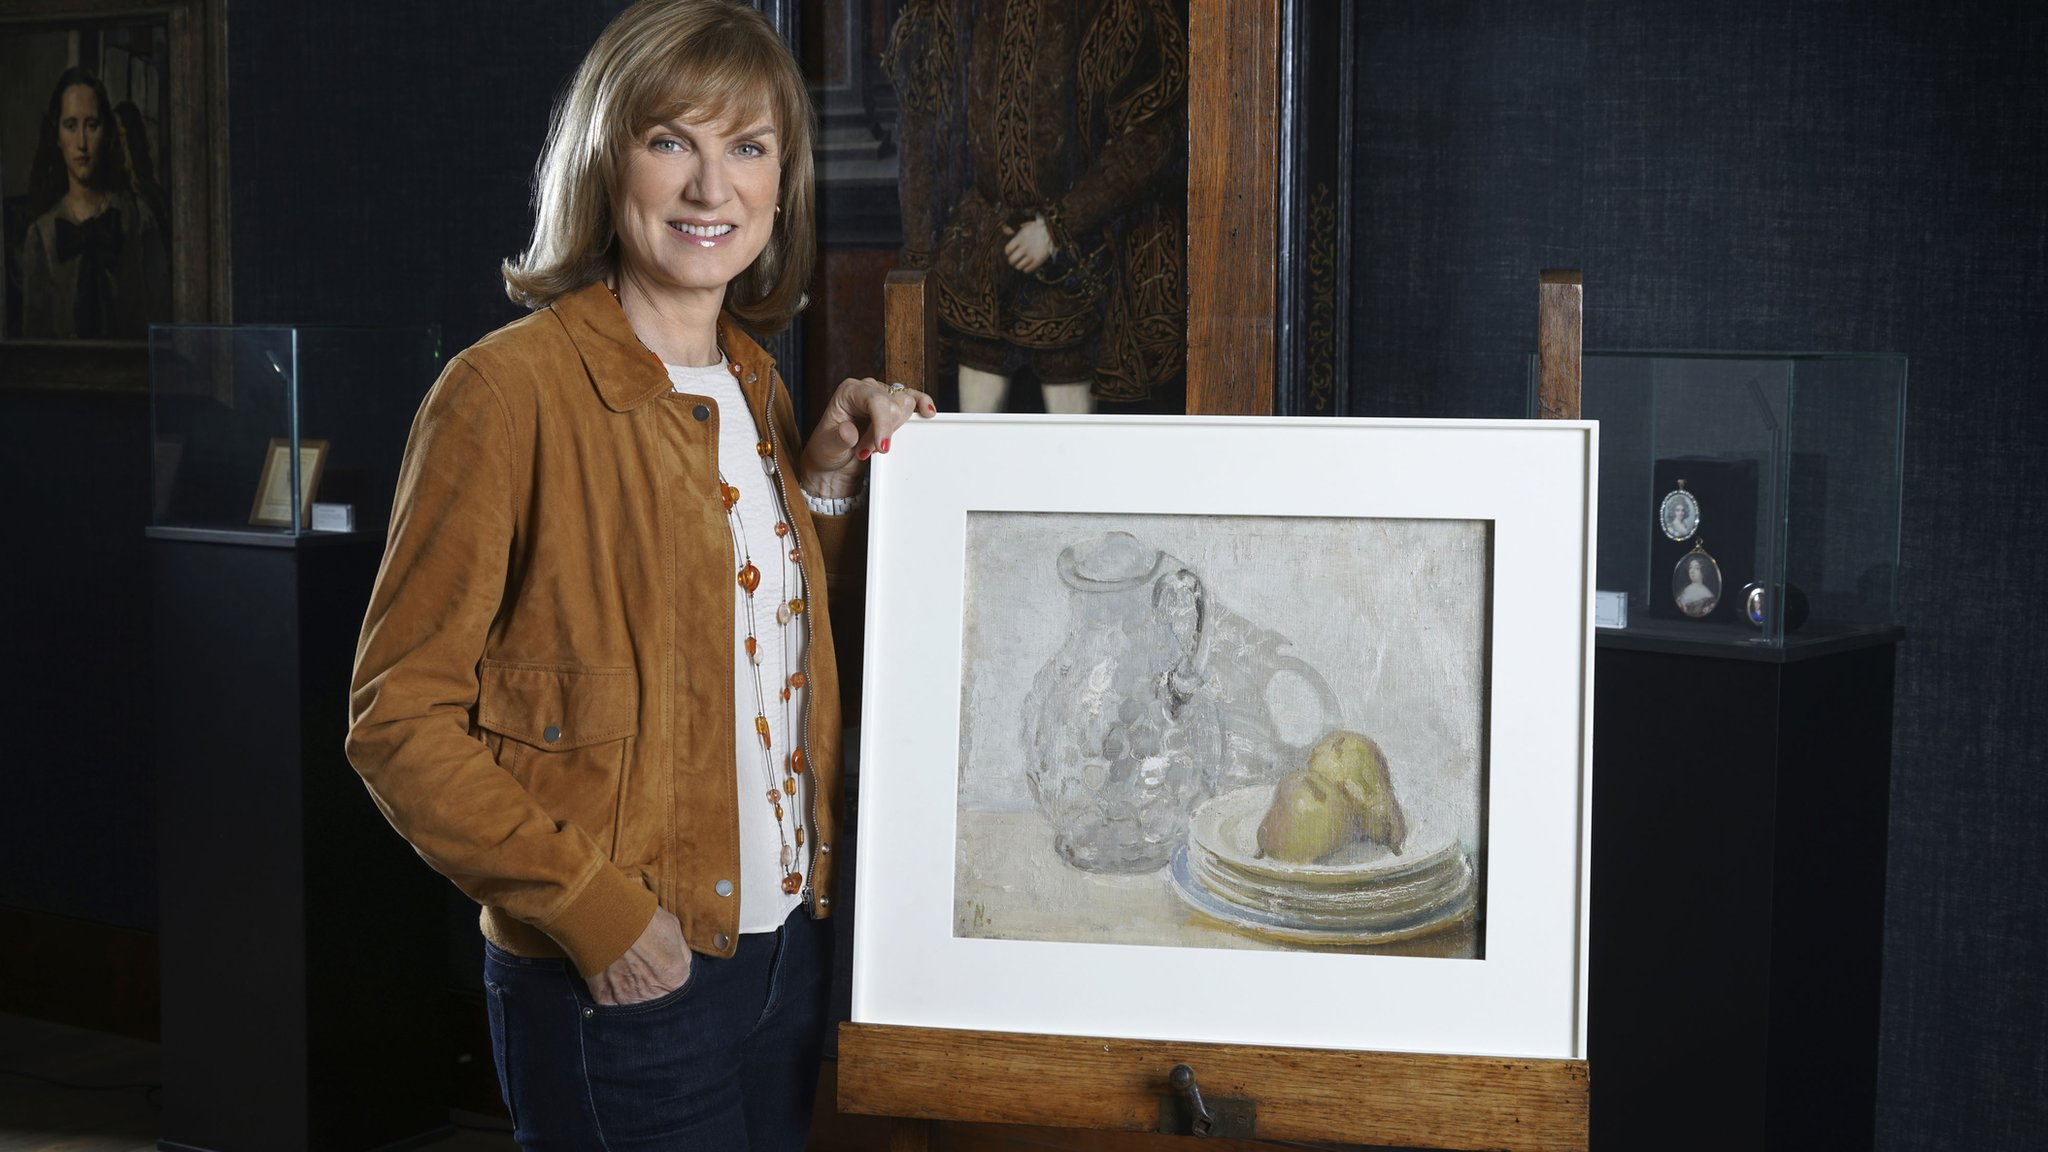 Nicholson painting bought for £165k is 'fake'